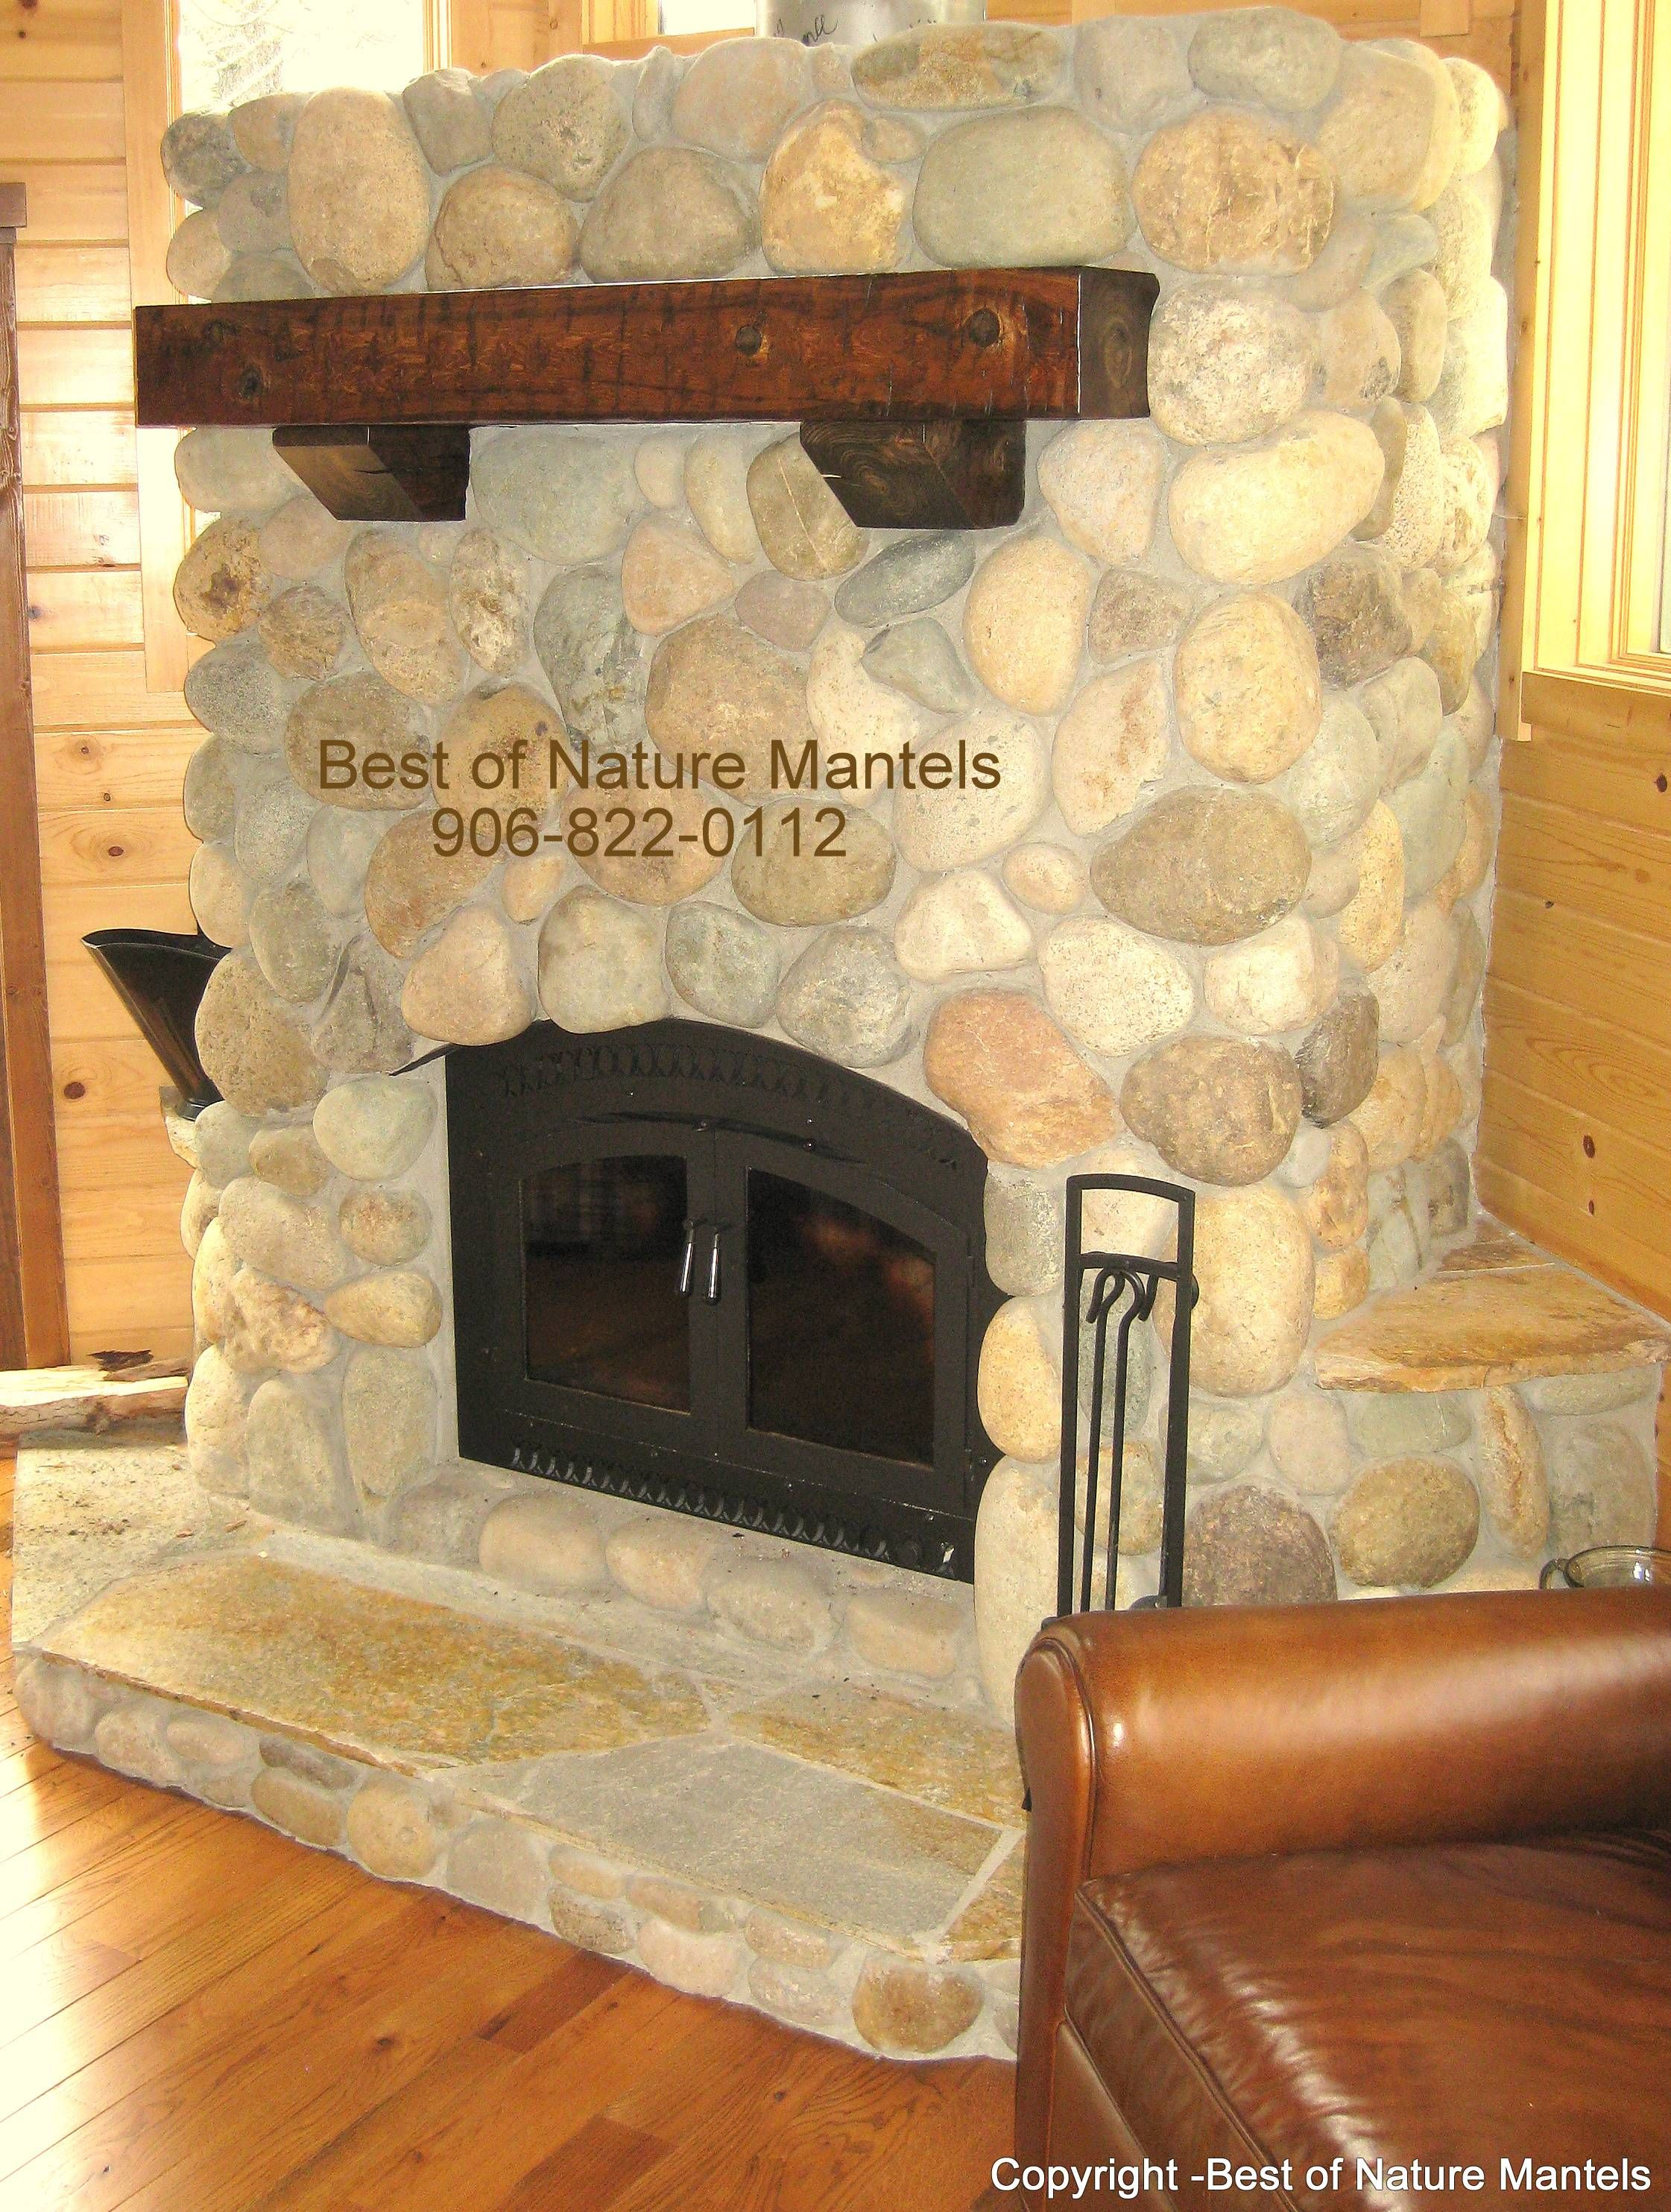 Corner fireplace mantel designs x 2967 pxfireplace mantels   wood fireplace mantels  log mantel  antique  . Old Wood Fireplace Mantels. Home Design Ideas